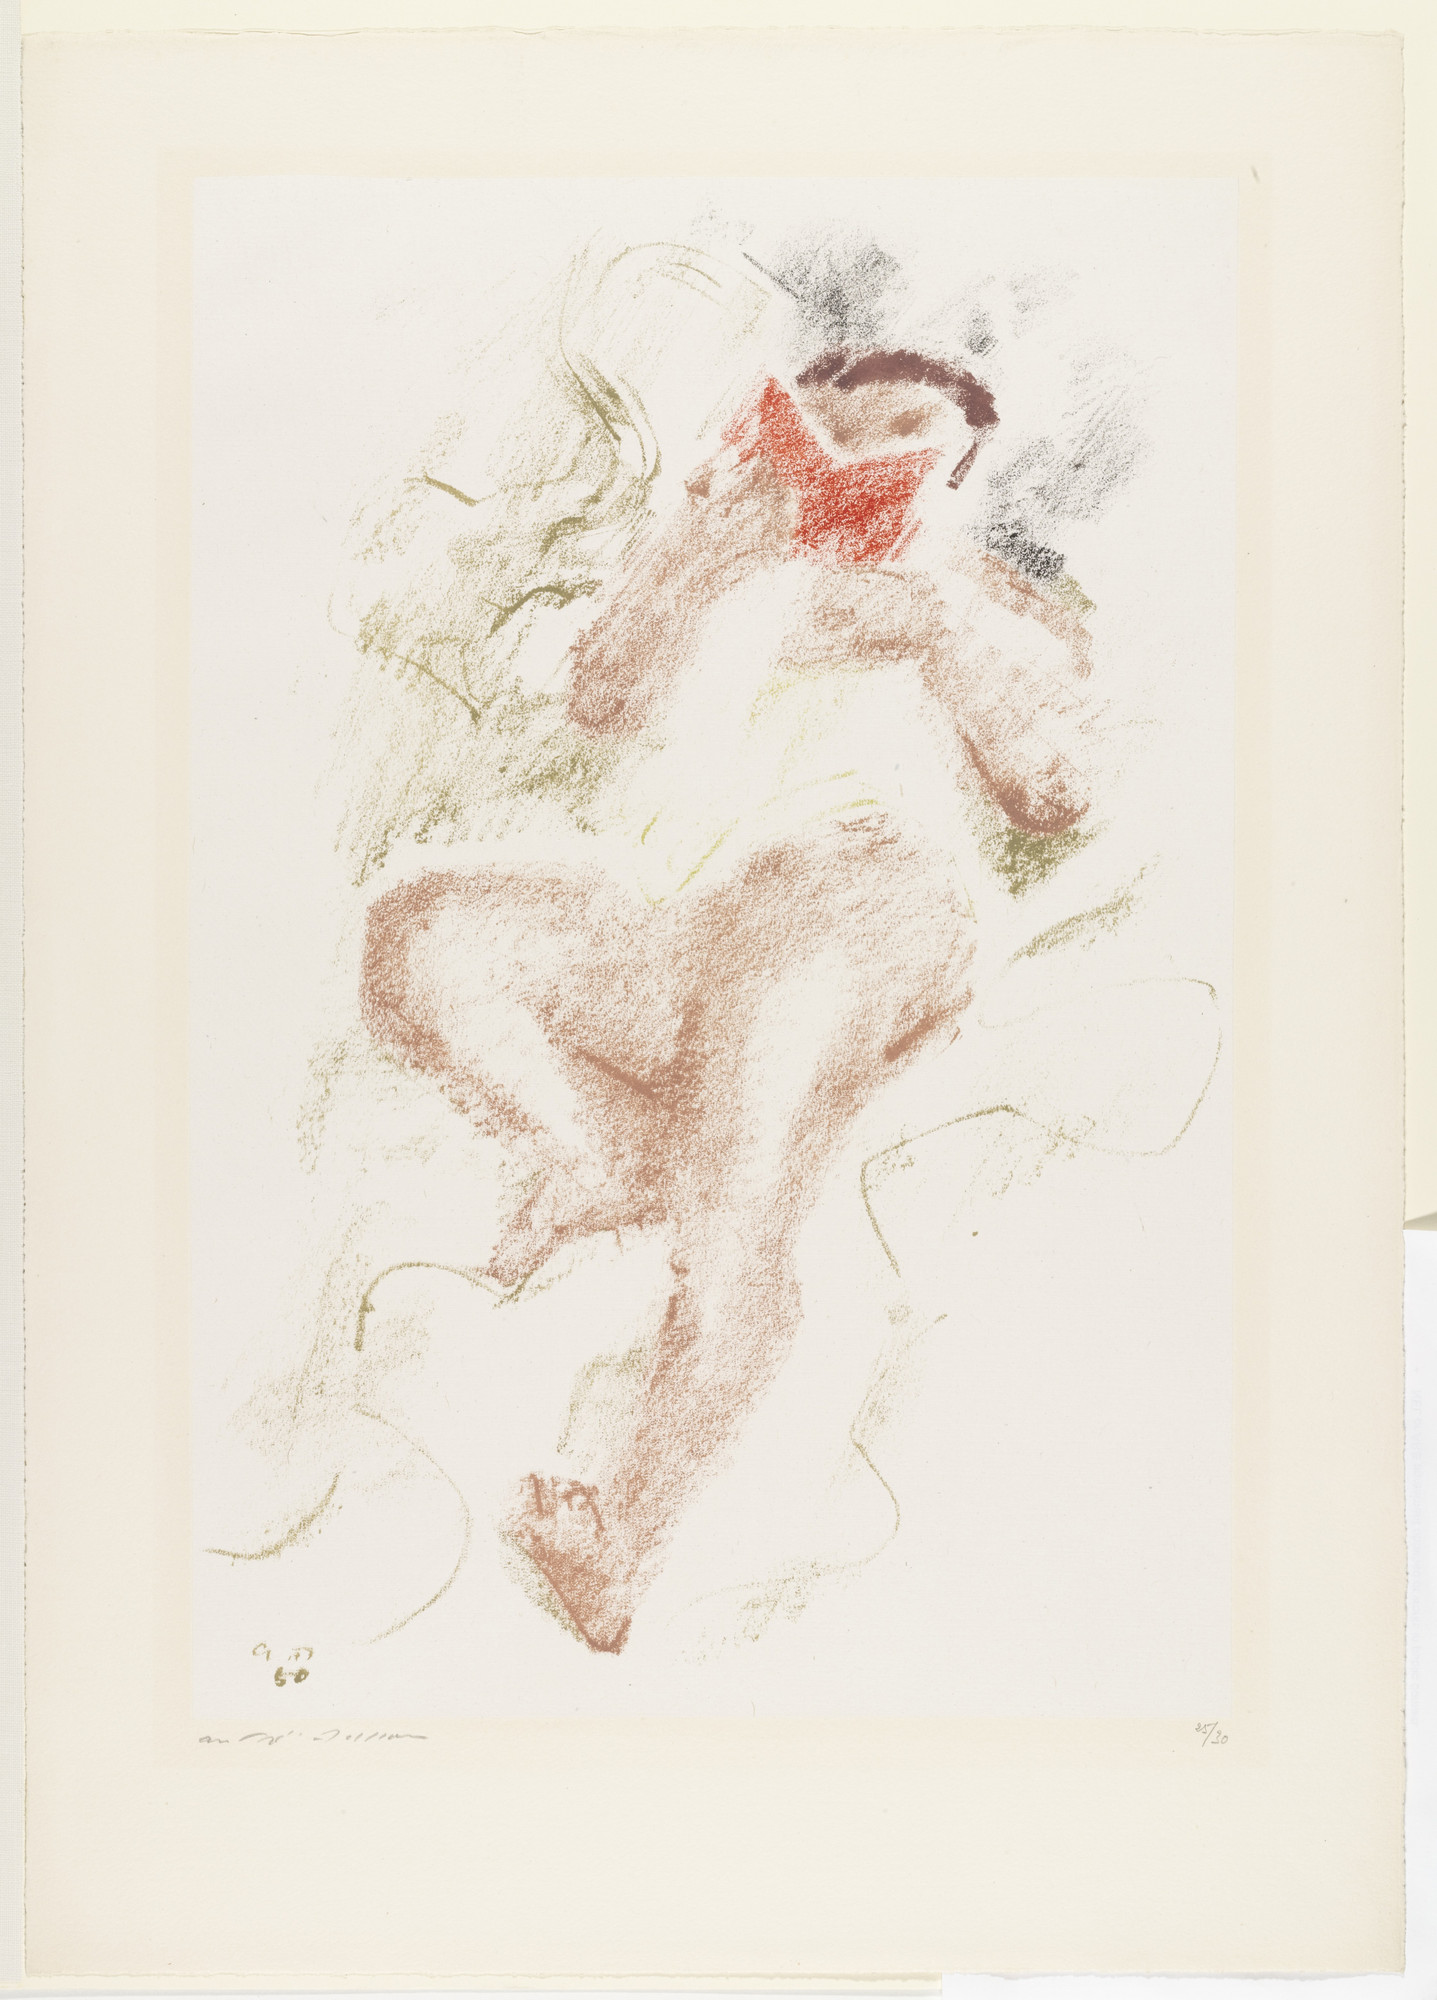 André Masson. Reader with Red Book. 1950